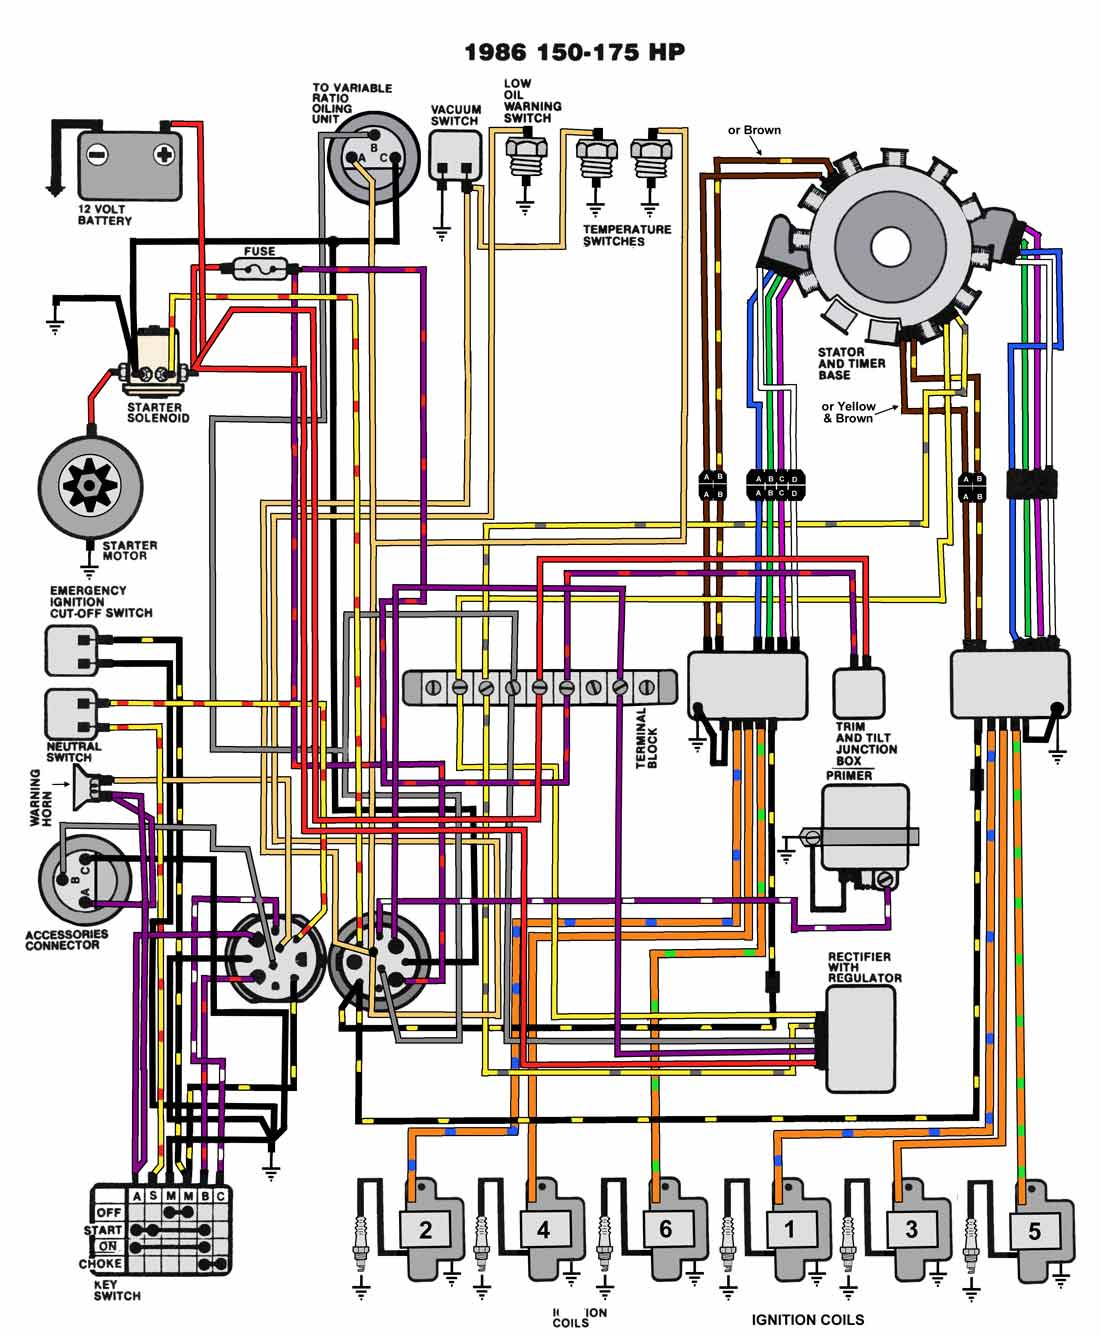 150 johnson outboard control wiring diagram 5 14 jaun bergbahnen de \u2022 Johnson Outboard Key Switch wiring schematics for evinrude 115 hp wiring diagram rh 41 schnitzler bestattungen de 1995 johnson outboard wiring diagram wiring diagrams for 1986 115